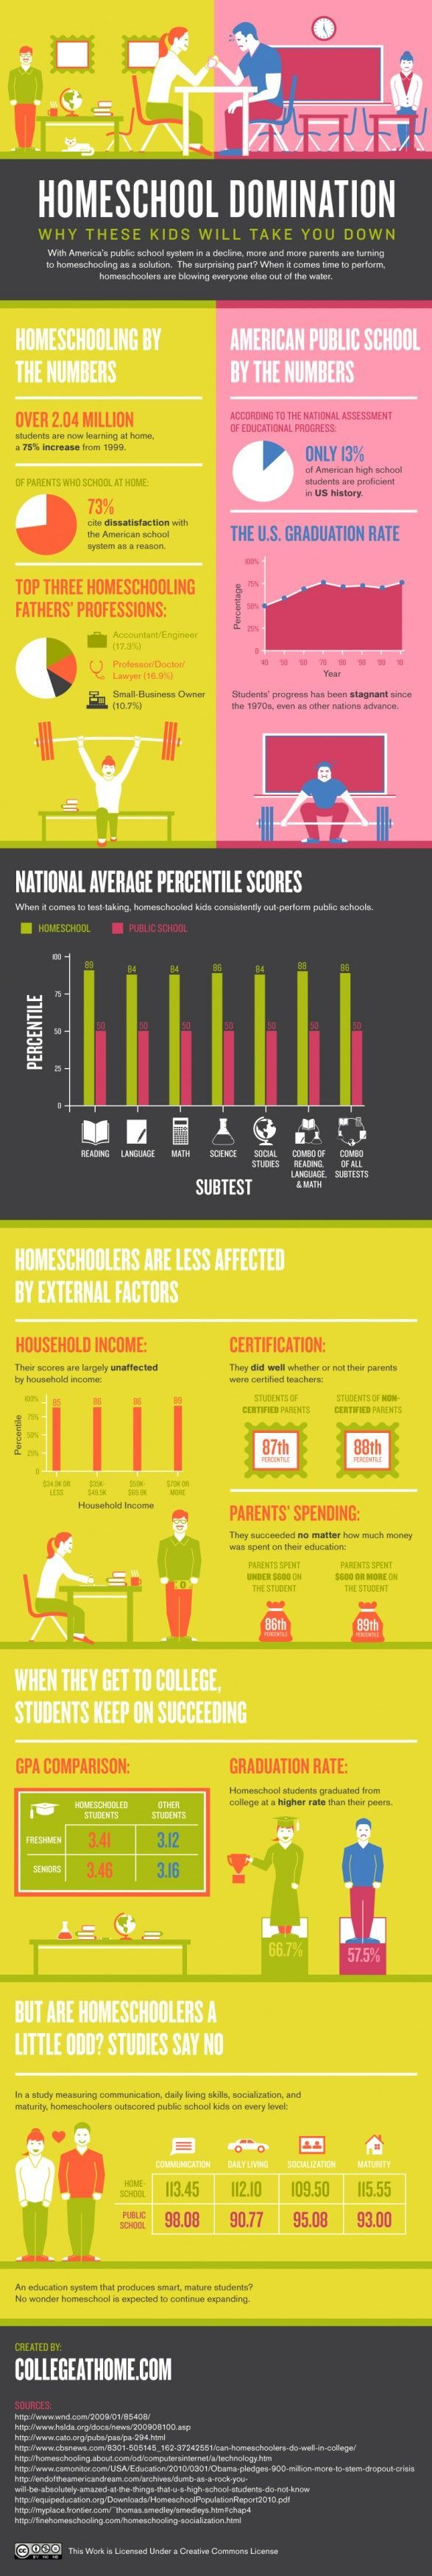 Facts and Statistics about Homeschool vs. Public School: Academics, socialization, cost, parent demographics, and more. [links to a series about #homeschool and how one mom does it]